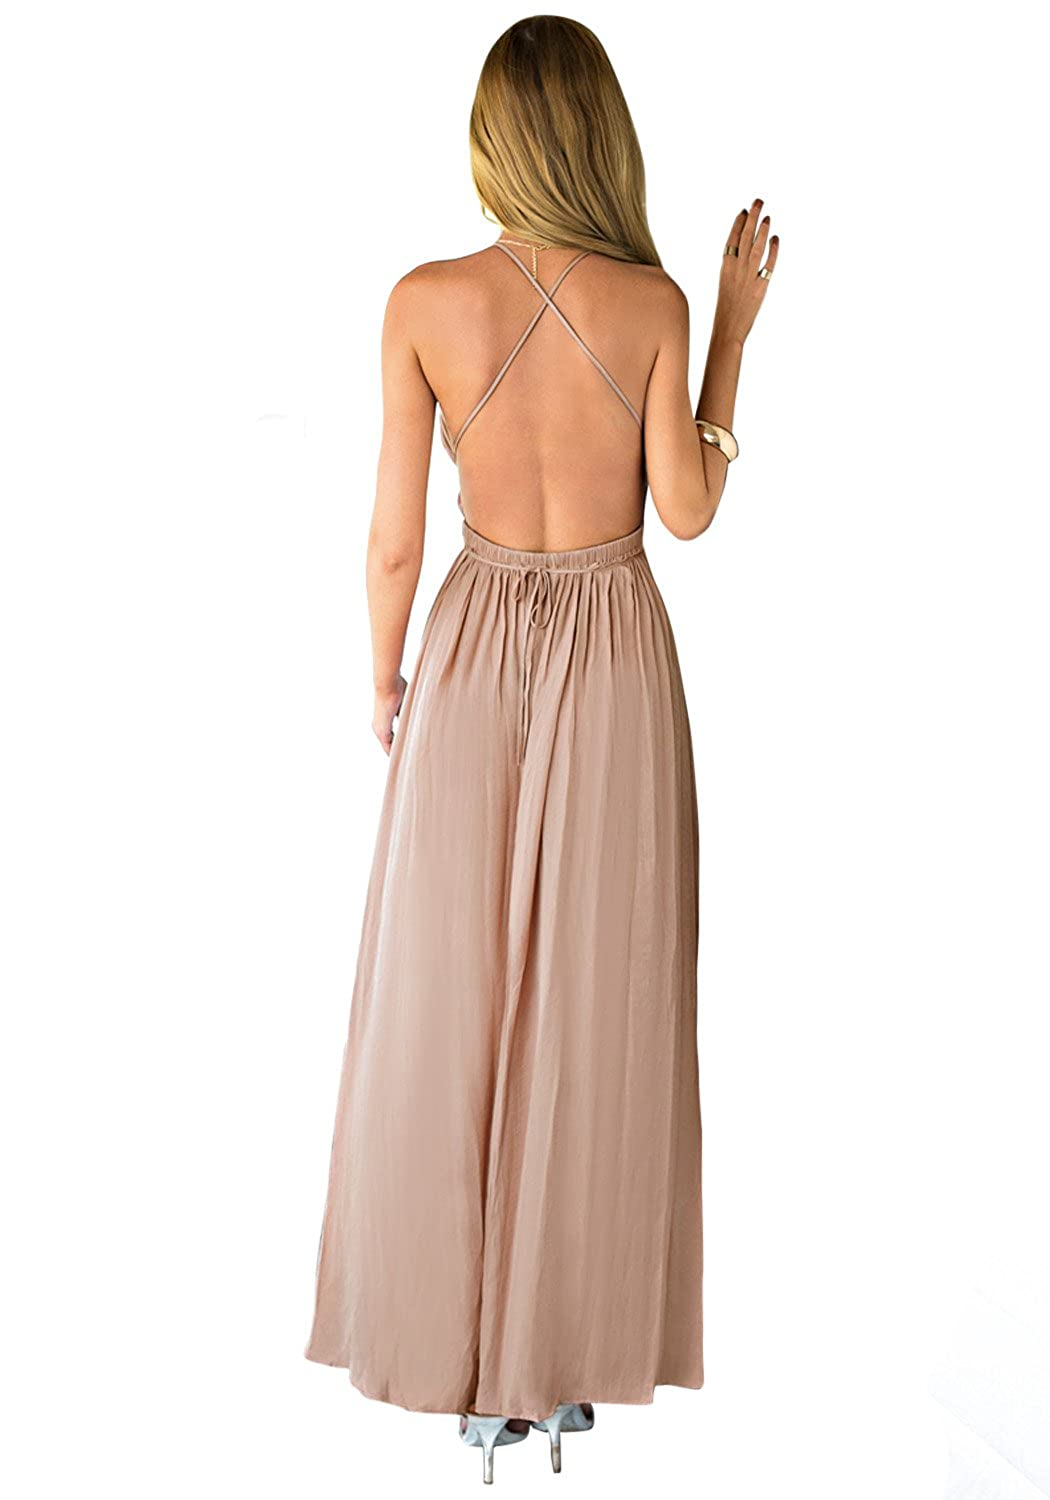 Lookbook Store Women Camel Plunge Crisscross Back Front Slit Strappy Maxi Dress US 12 at Amazon Womens Clothing store: